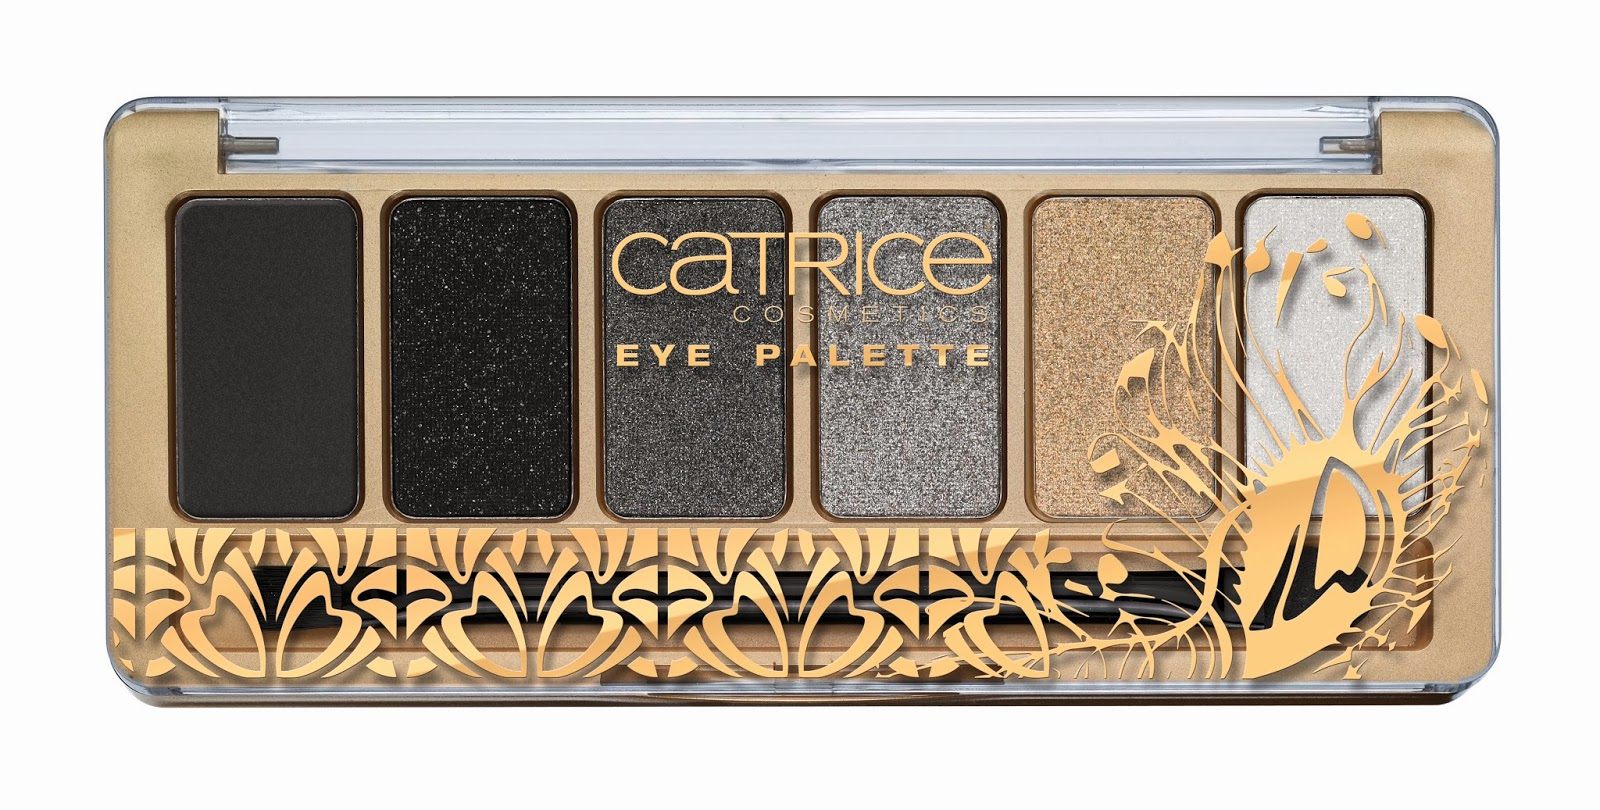 Betty Nails: Catrice Limited Edition [Press Release]